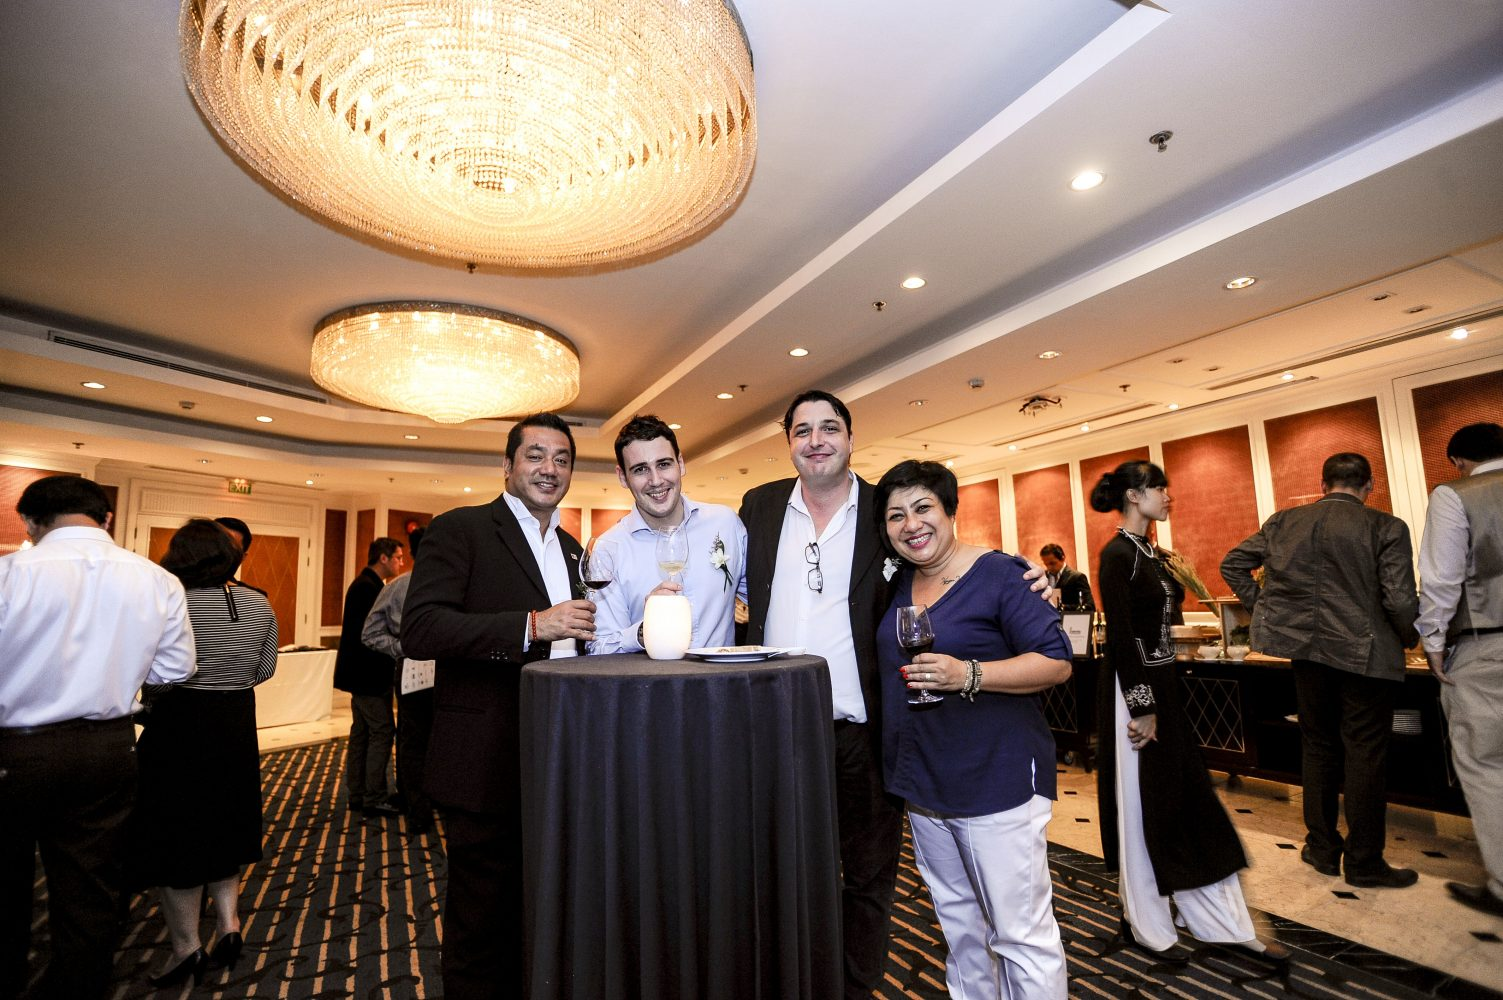 metropole-hanoi-to-host-southeast-asias-largest-wine-event-at-11th-les-aromes-festival